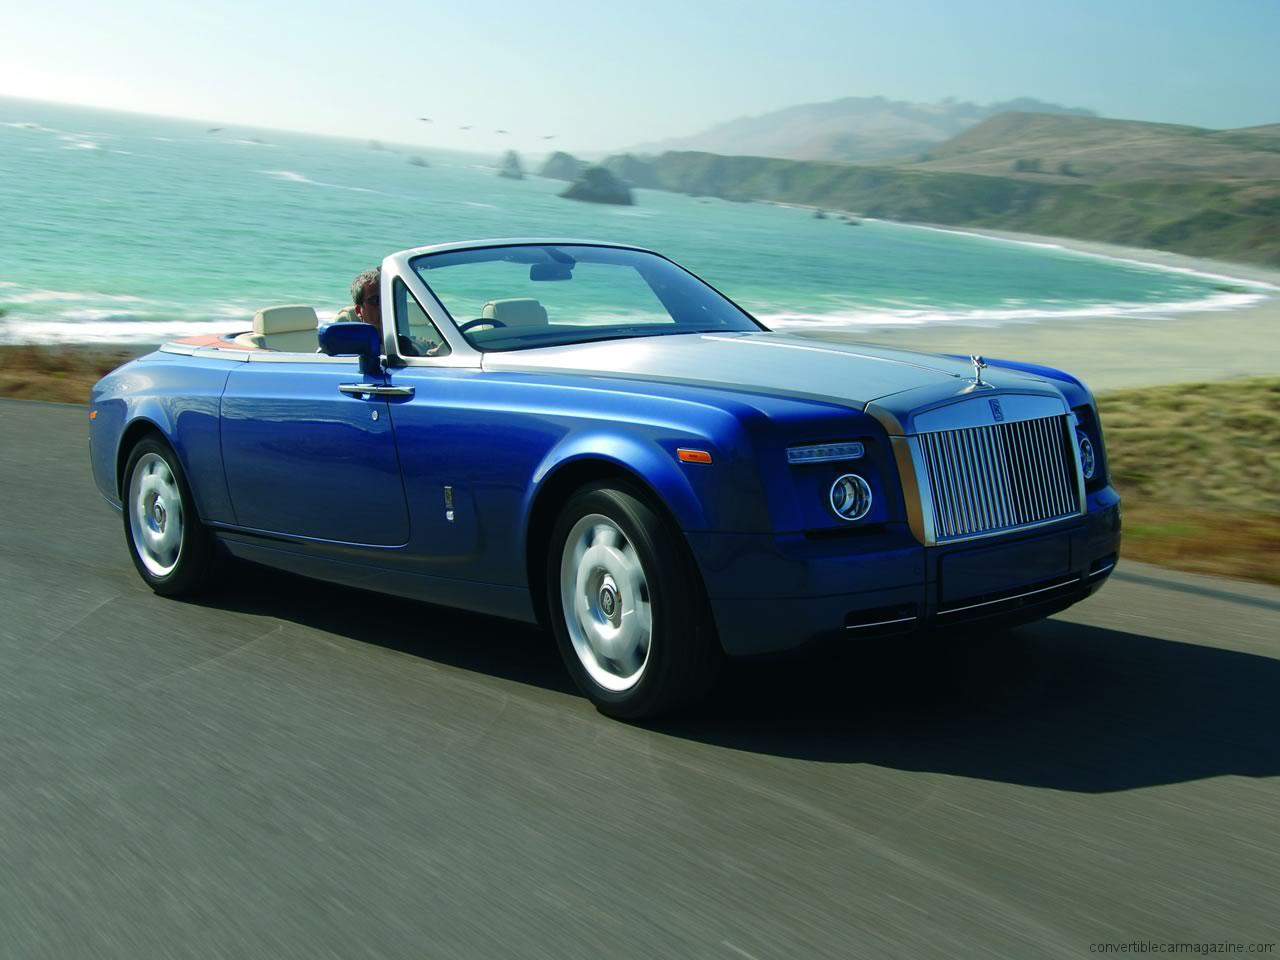 Rolls Royce Phantom Drophead Coupe Buying Guide